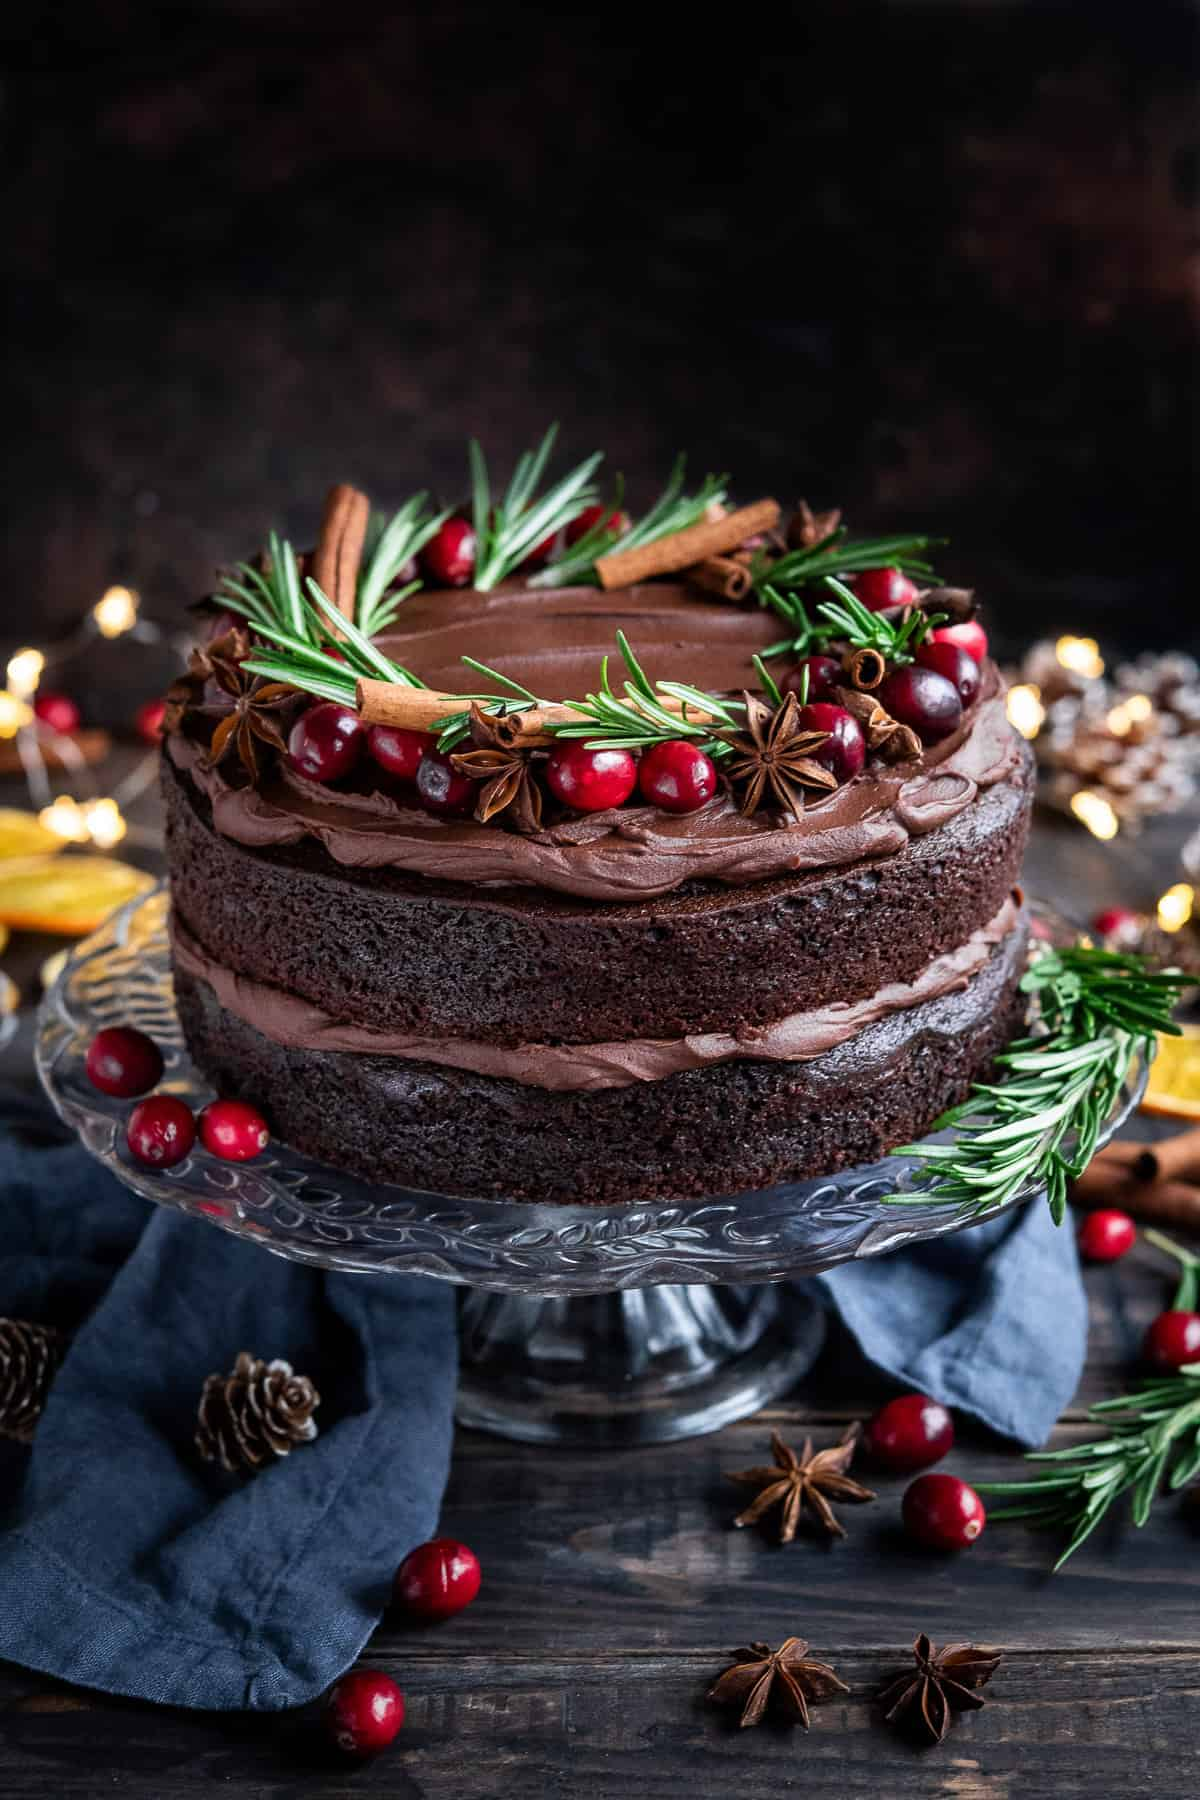 Vegan mulled wine chocolate cake topped with cranberries, rosemary, star anise and cinnamon sticks on a glass cake stand on a wooden table.